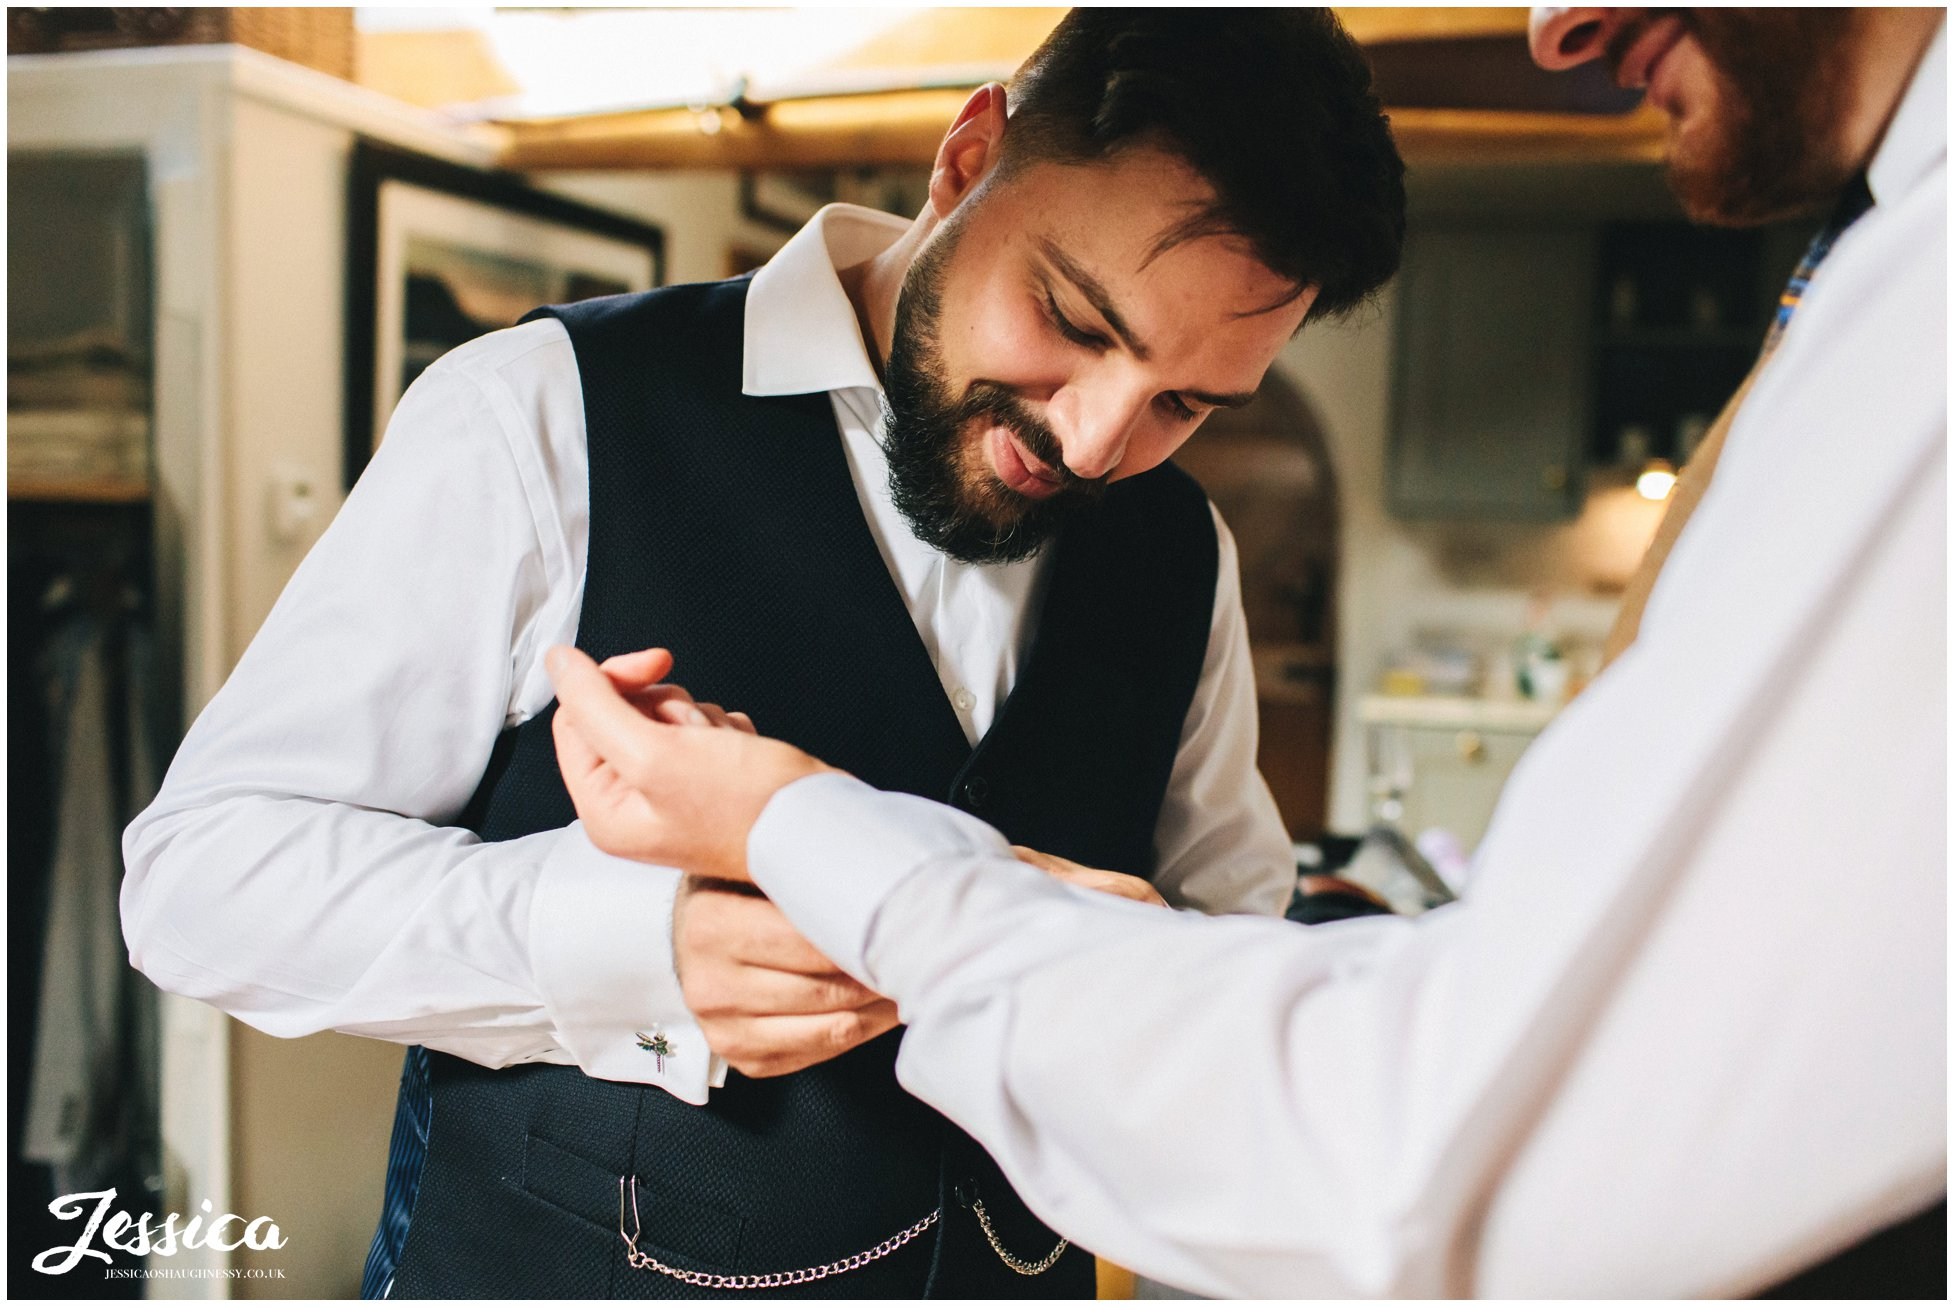 Groom fastens his fiance's cufflinks